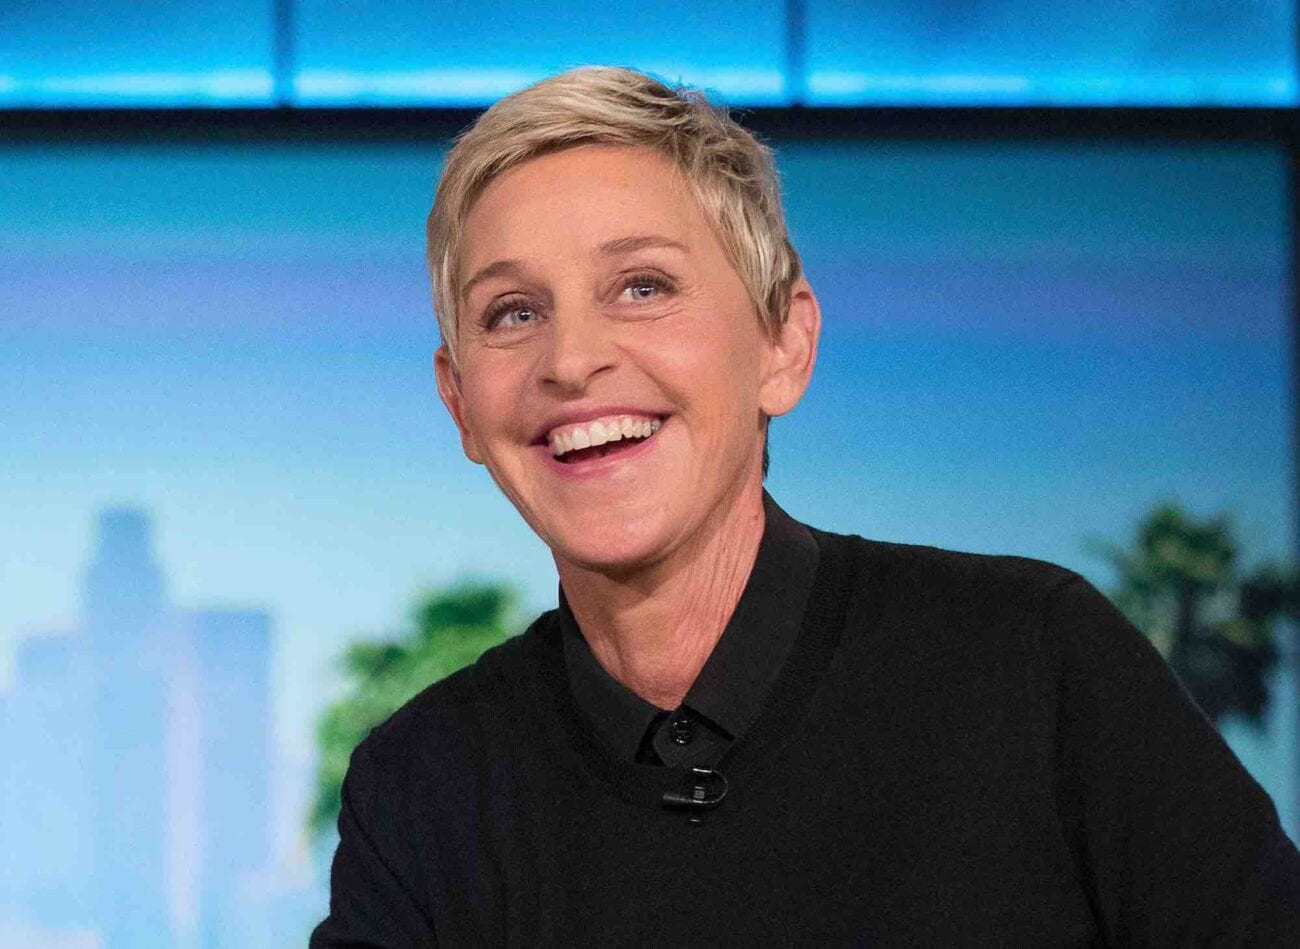 It's no secret that Ellen DeGeneres has a history of being mean to the people around her. Here's a look at some of Ellen's most problematic jokes.